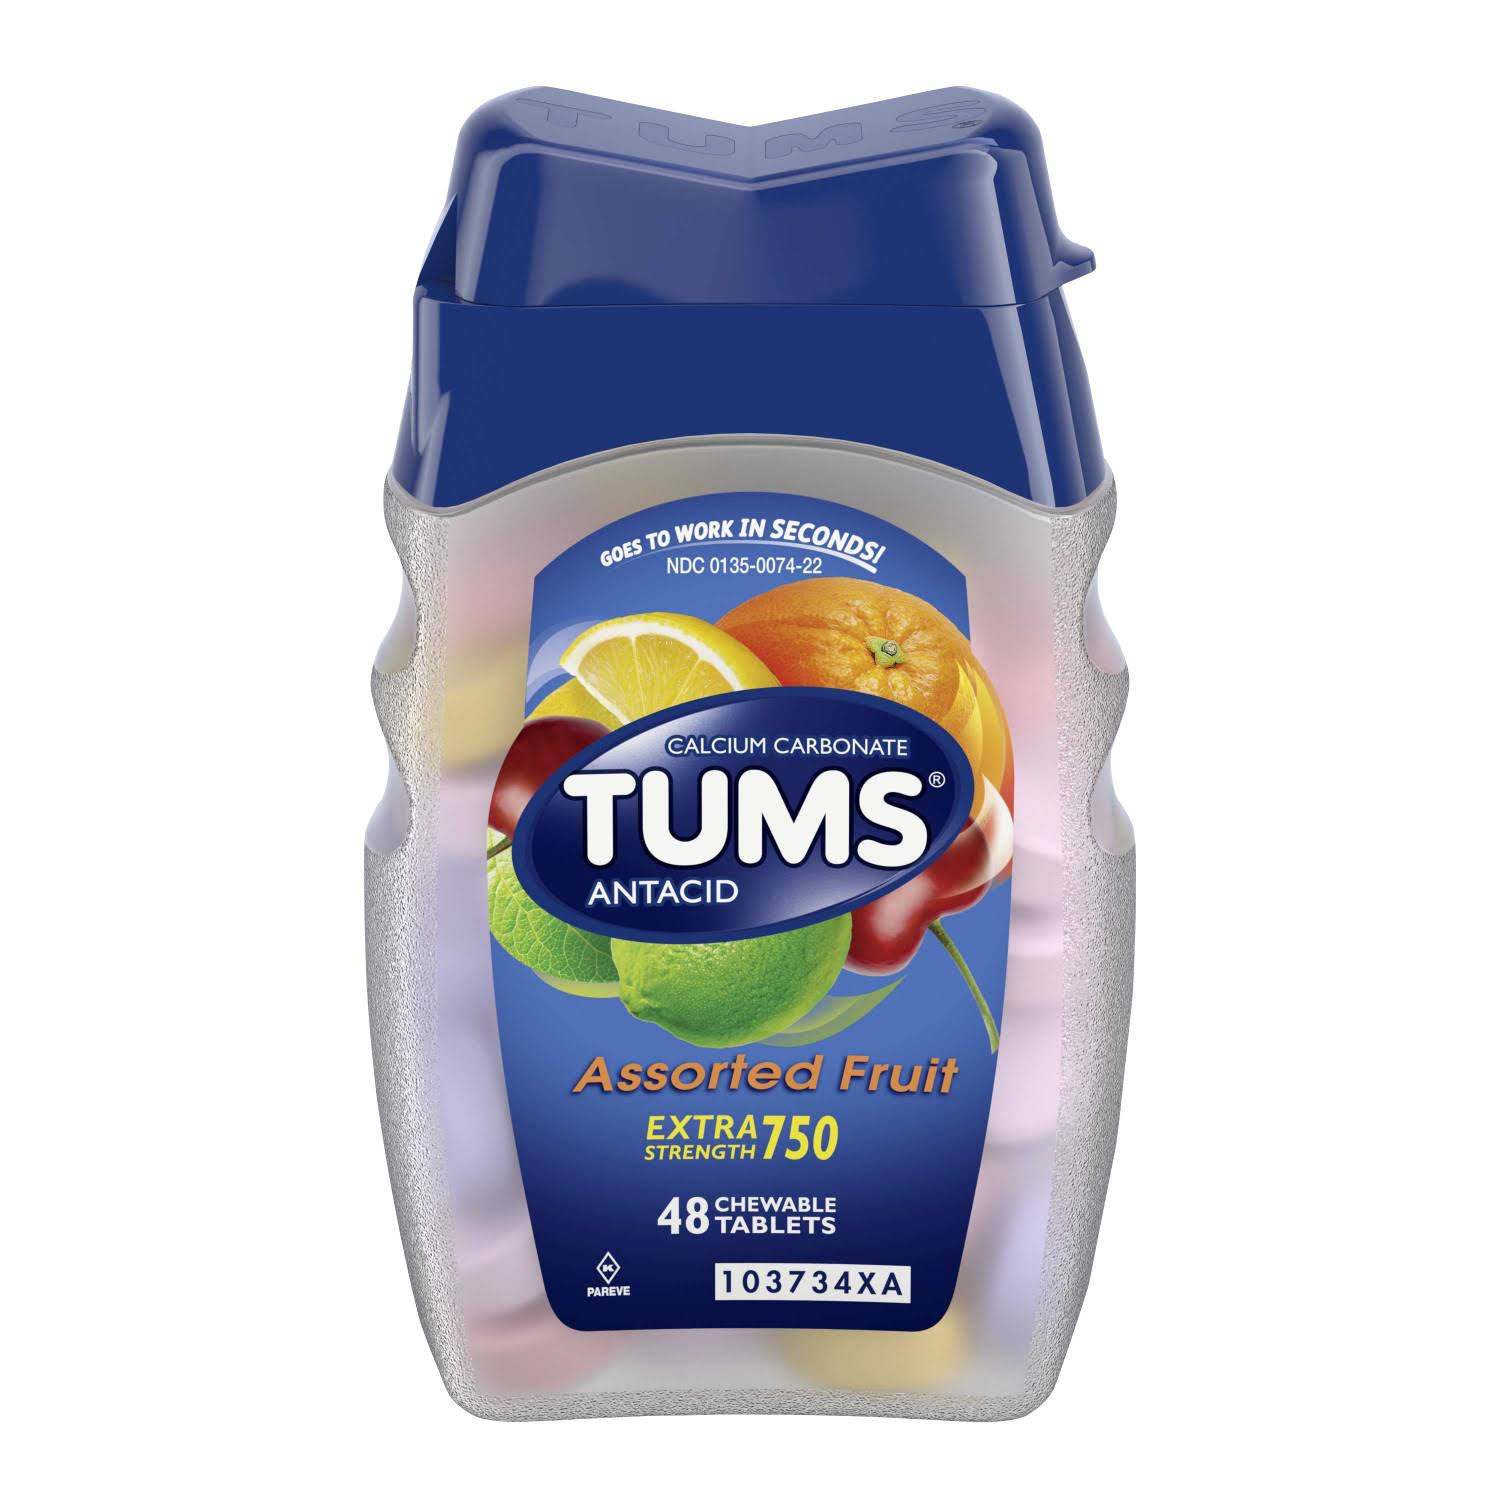 Tums Antacid Assorted Fruit Chewable Tablets - 48 Pack